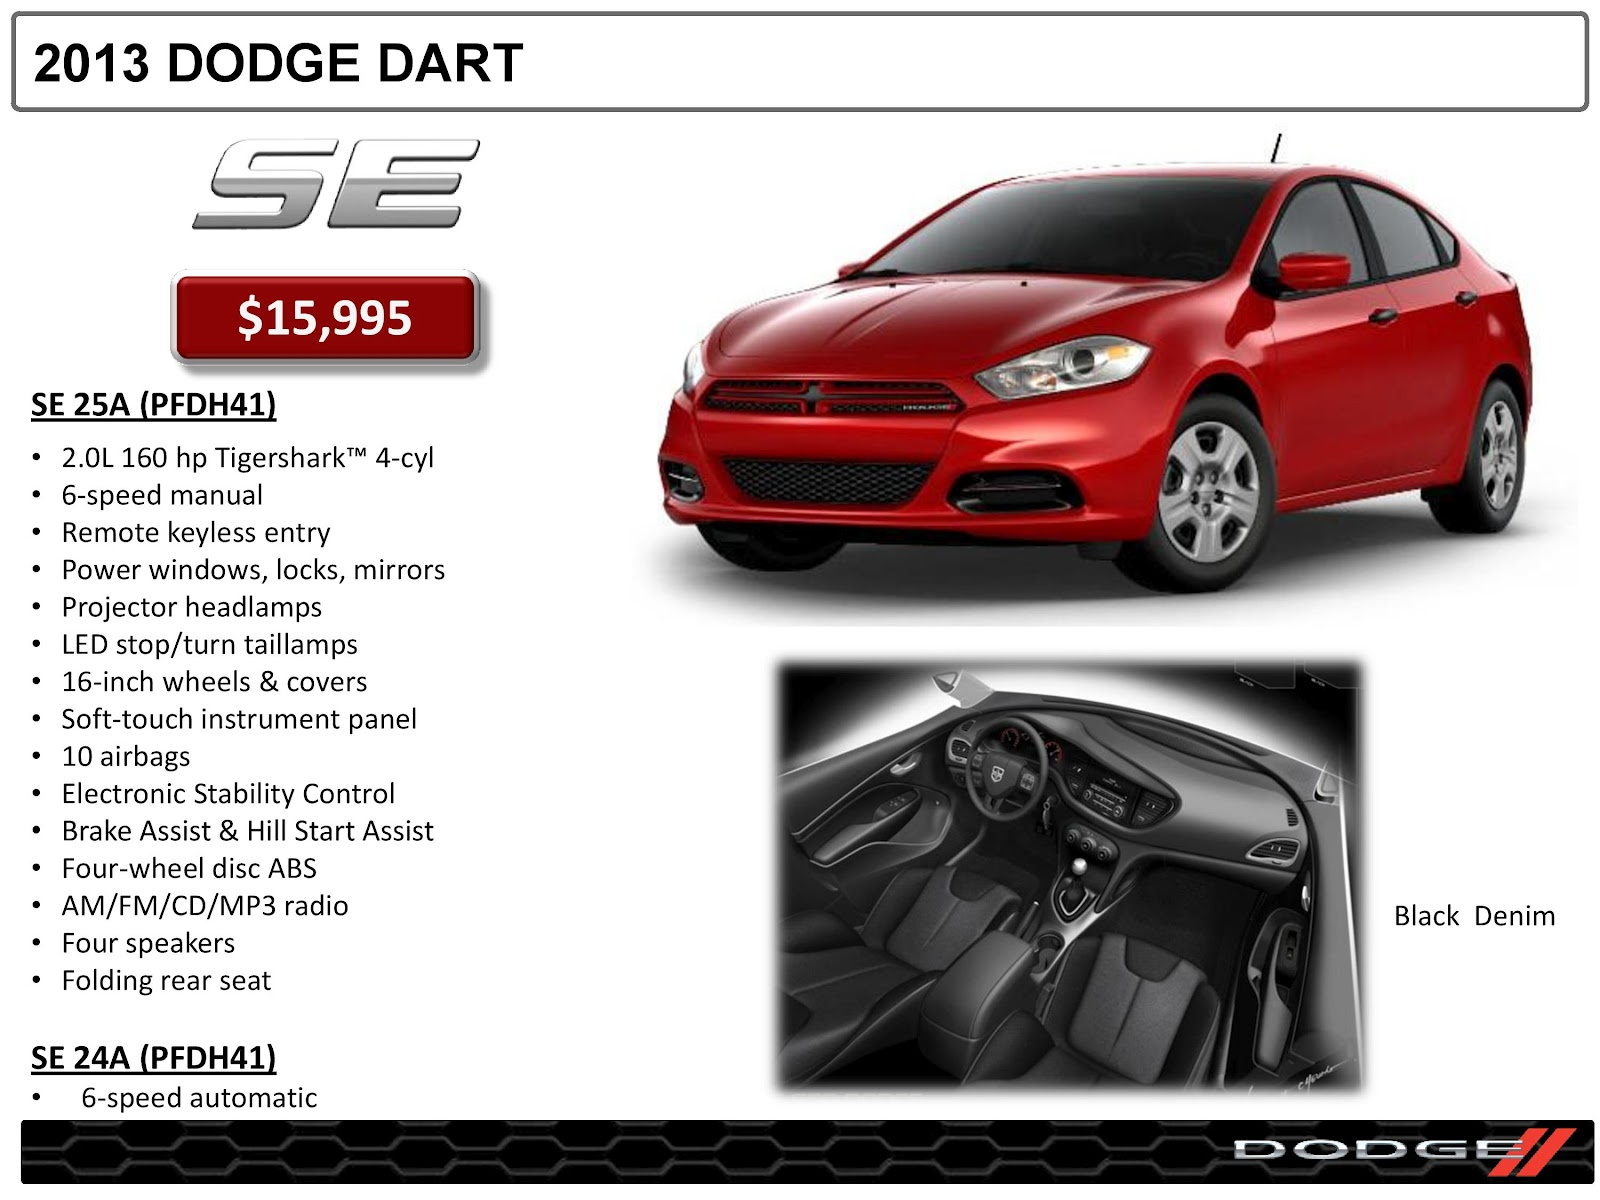 Official 2013 Dodge Dart Headquarters Website